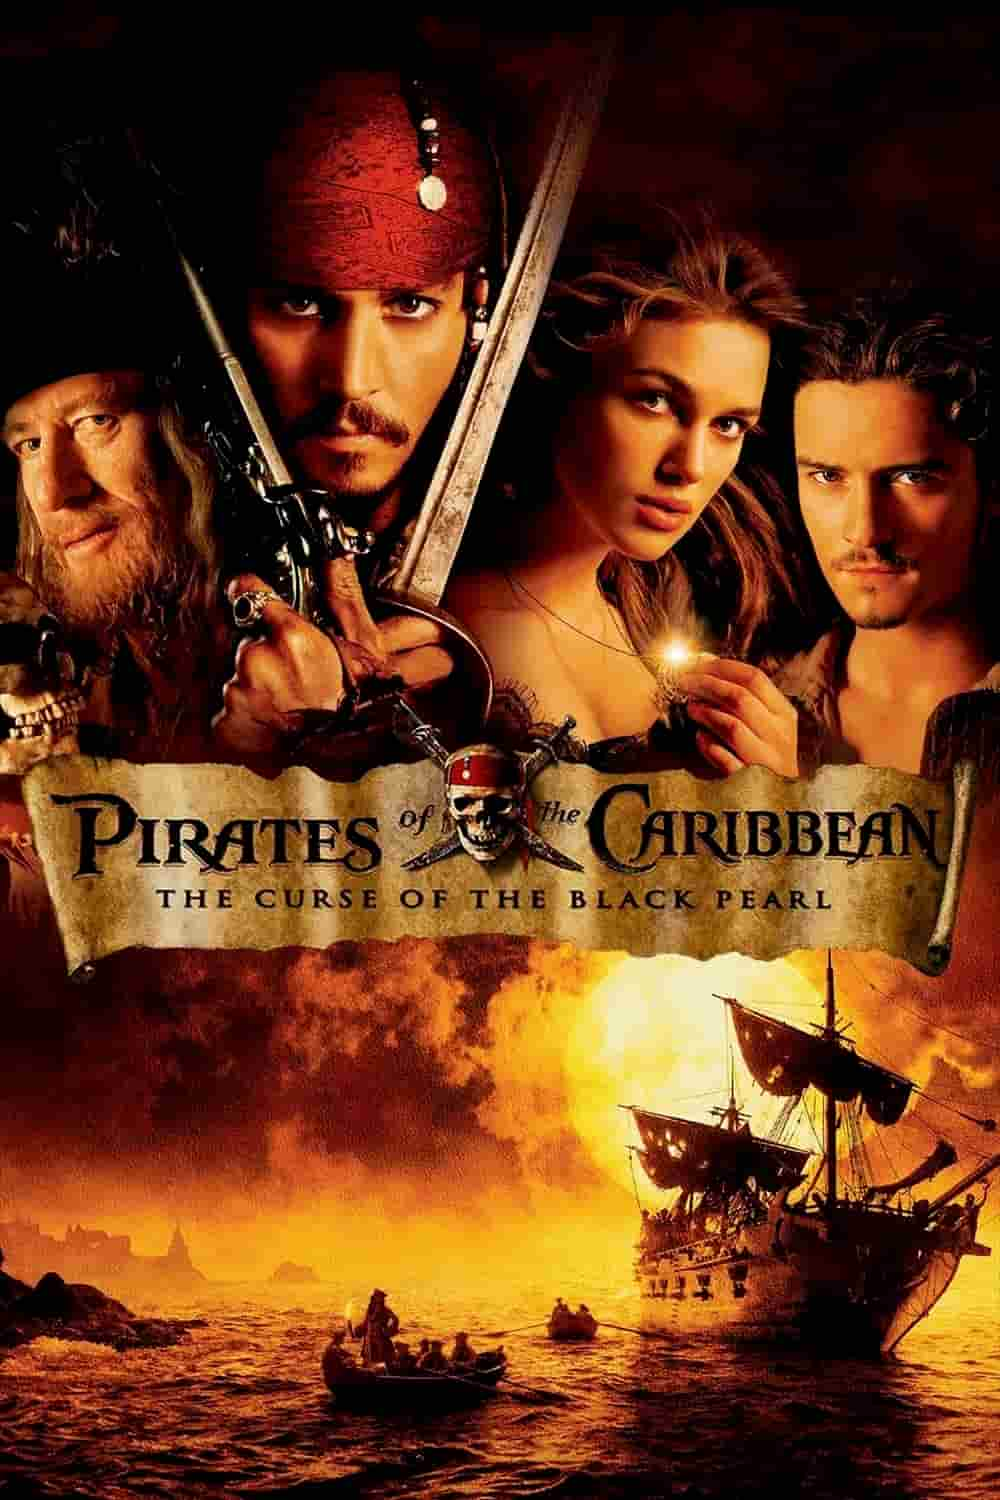 Pirates of the Caribbean- The Curse of the Black Pearl (2003)